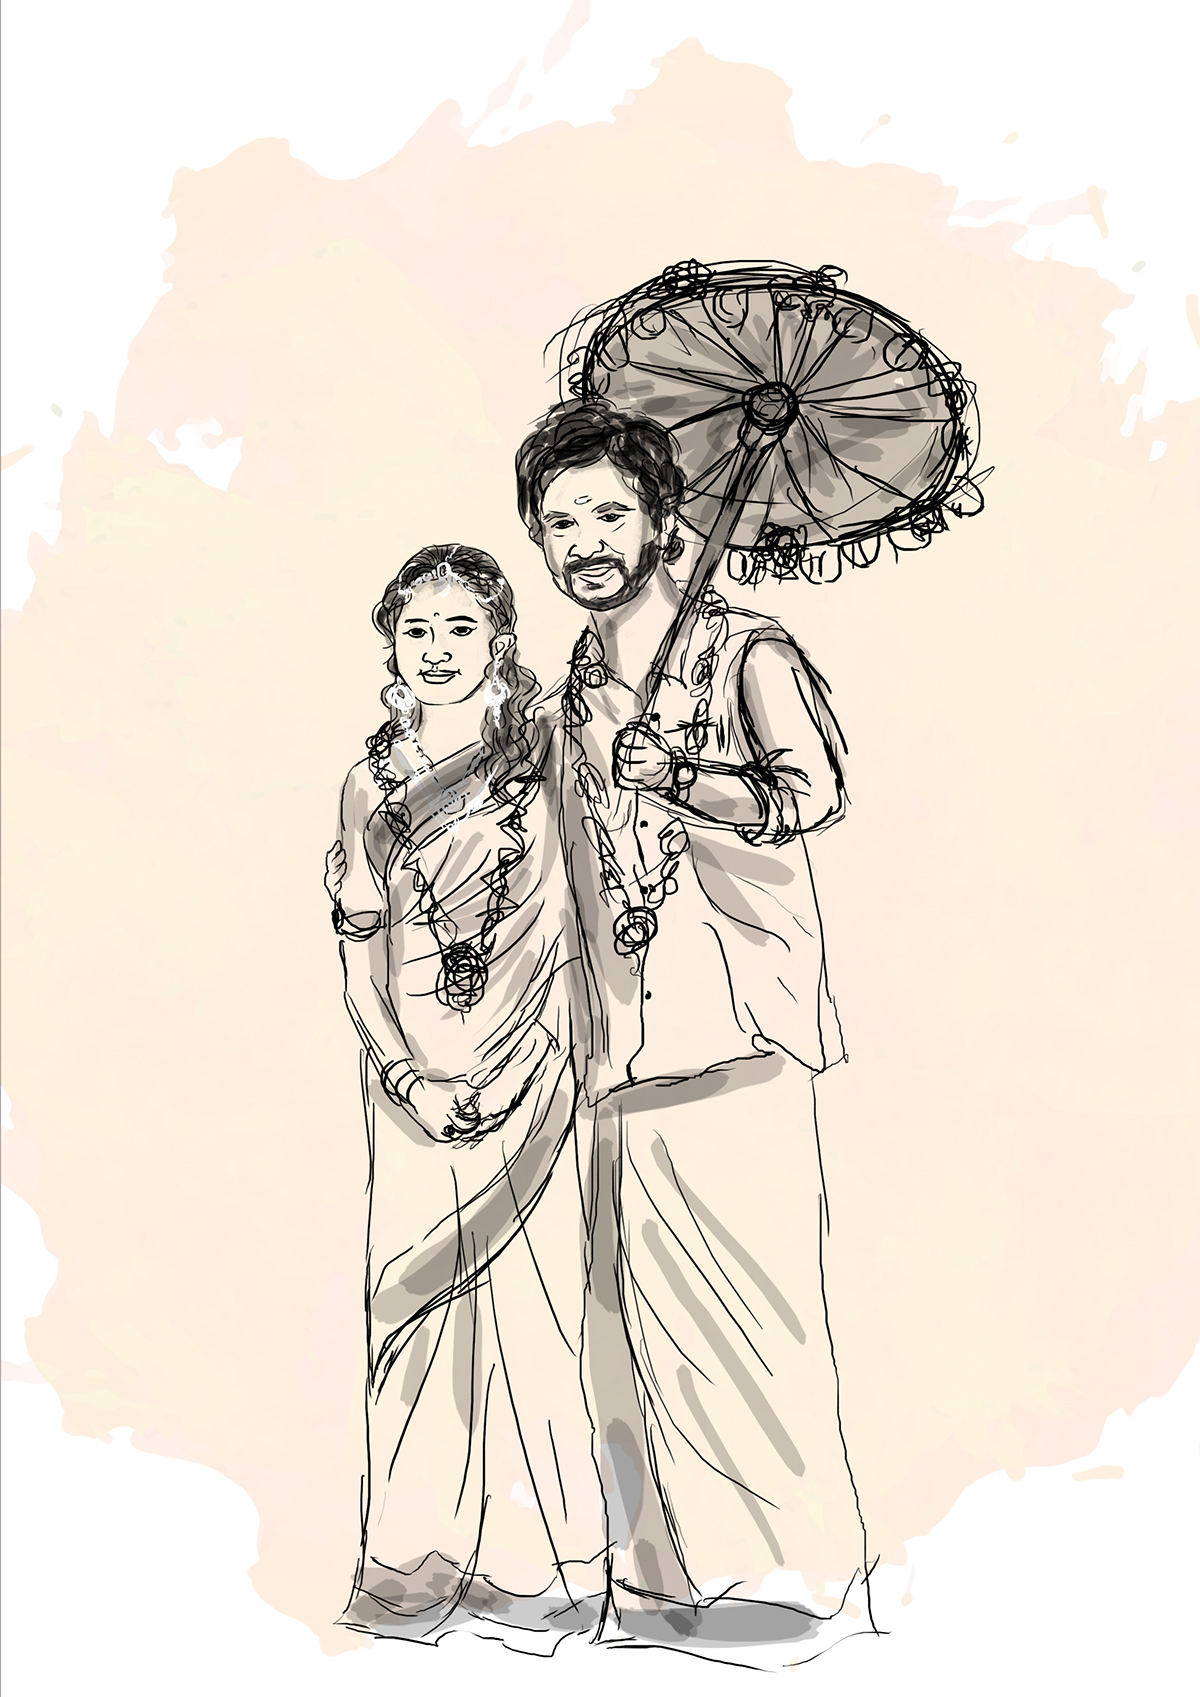 South Indian Mallu Wedding Invitation Card Cover Design On Pantone Canvas Gallery